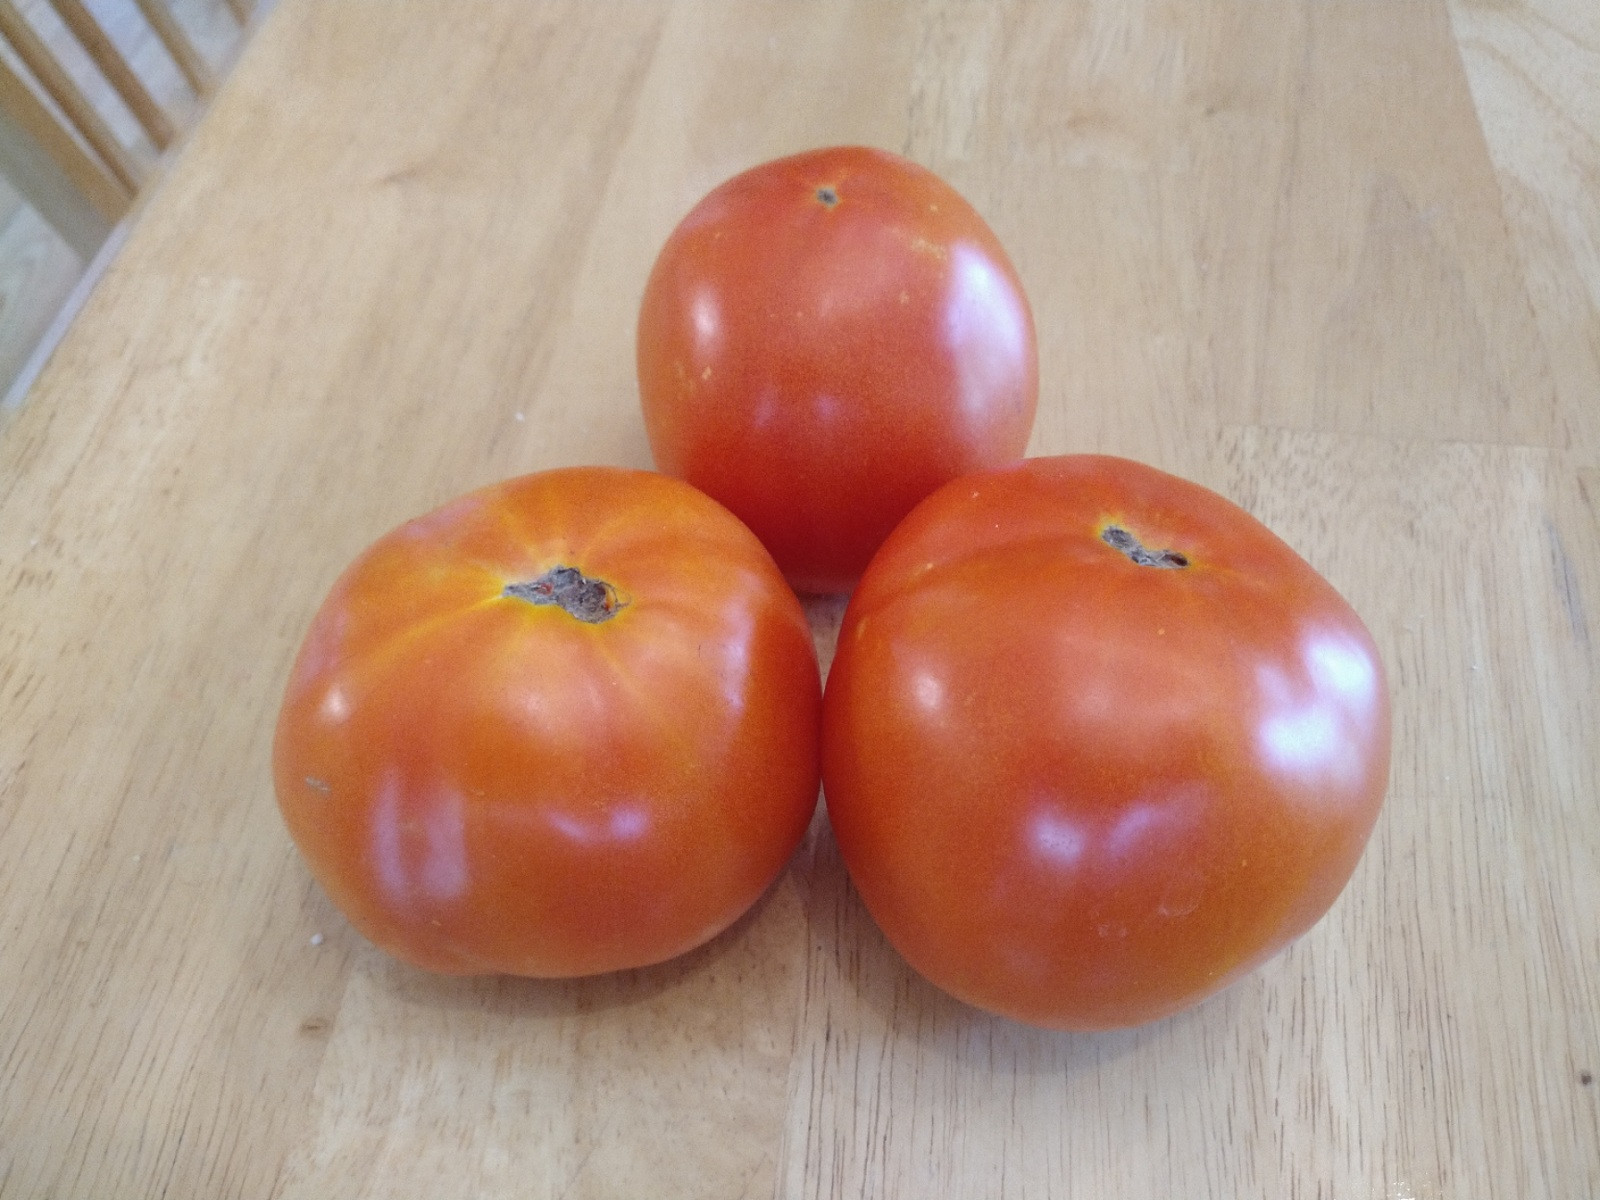 1 lb Vine ripe tomatoes (approx 2 tomatoes)